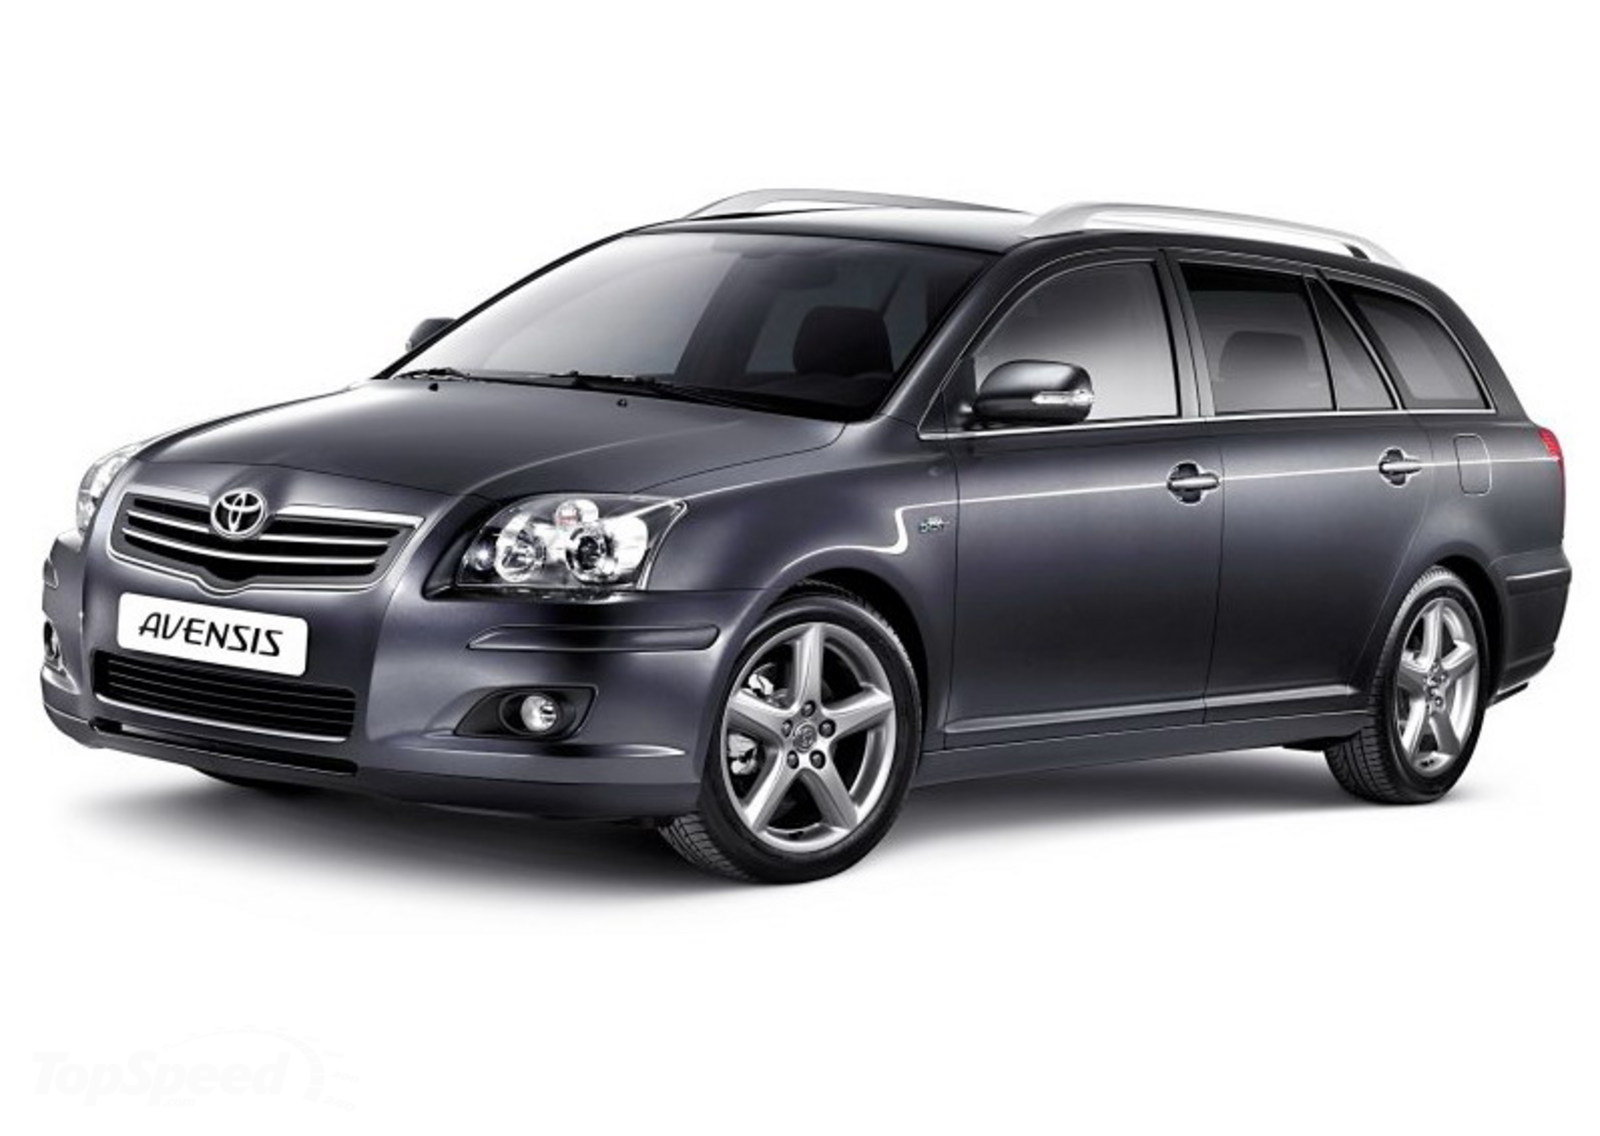 2007 toyota avensis review top speed. Black Bedroom Furniture Sets. Home Design Ideas